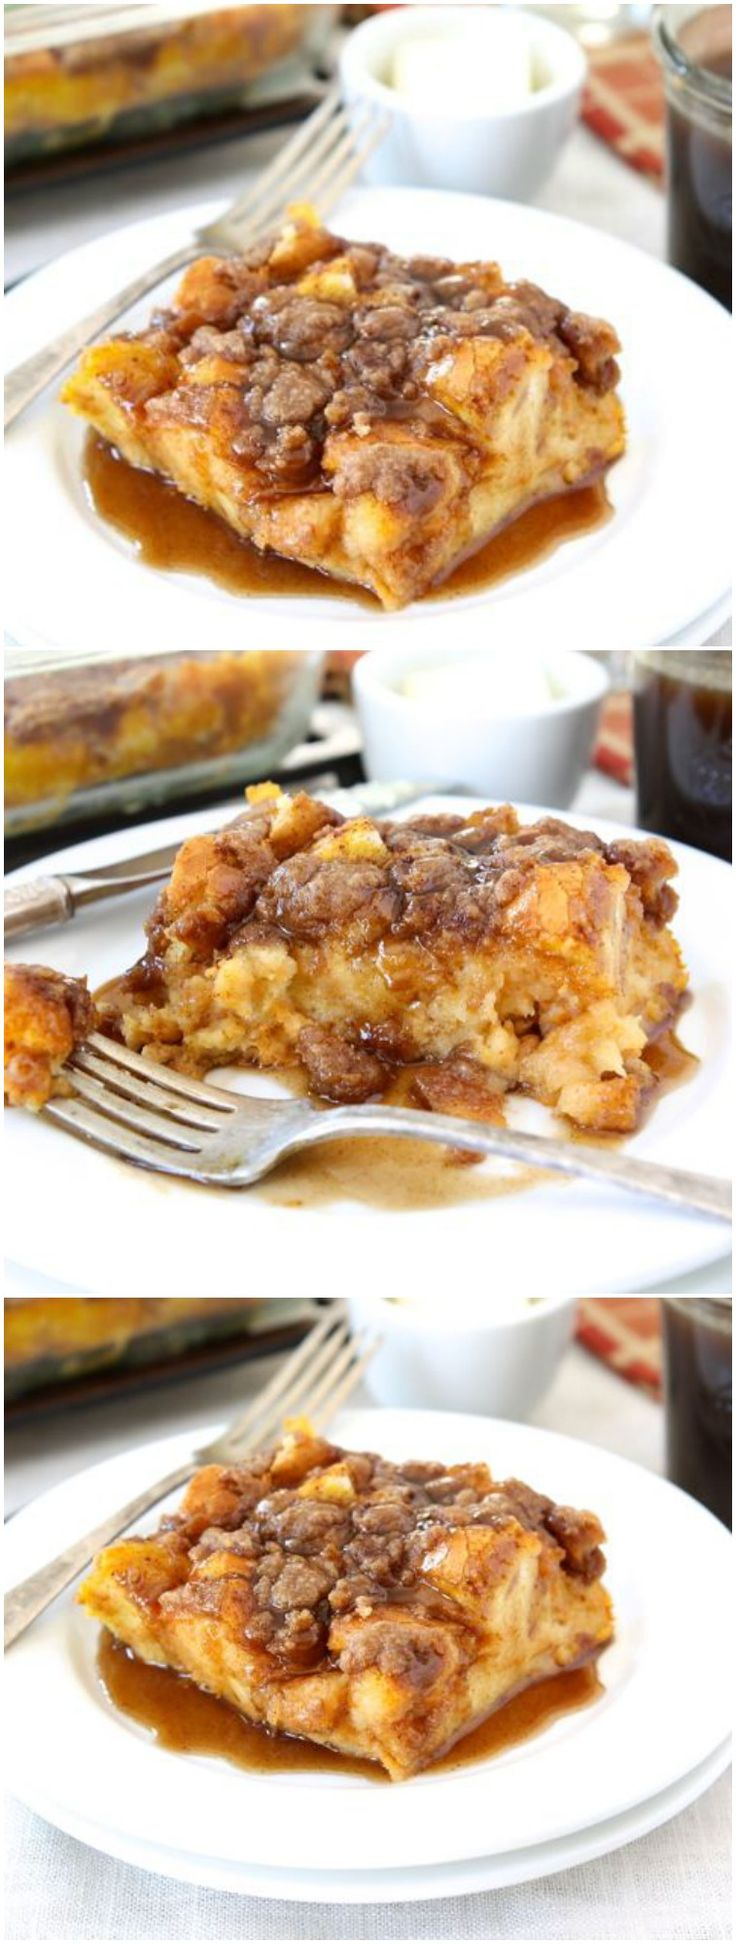 Baked Pumpkin French Toast Recipe on twopeasandtheirpod.com Love this decadent pumpkin French toast! You can make it the night before too! It's great for the holidays! #pumpkin